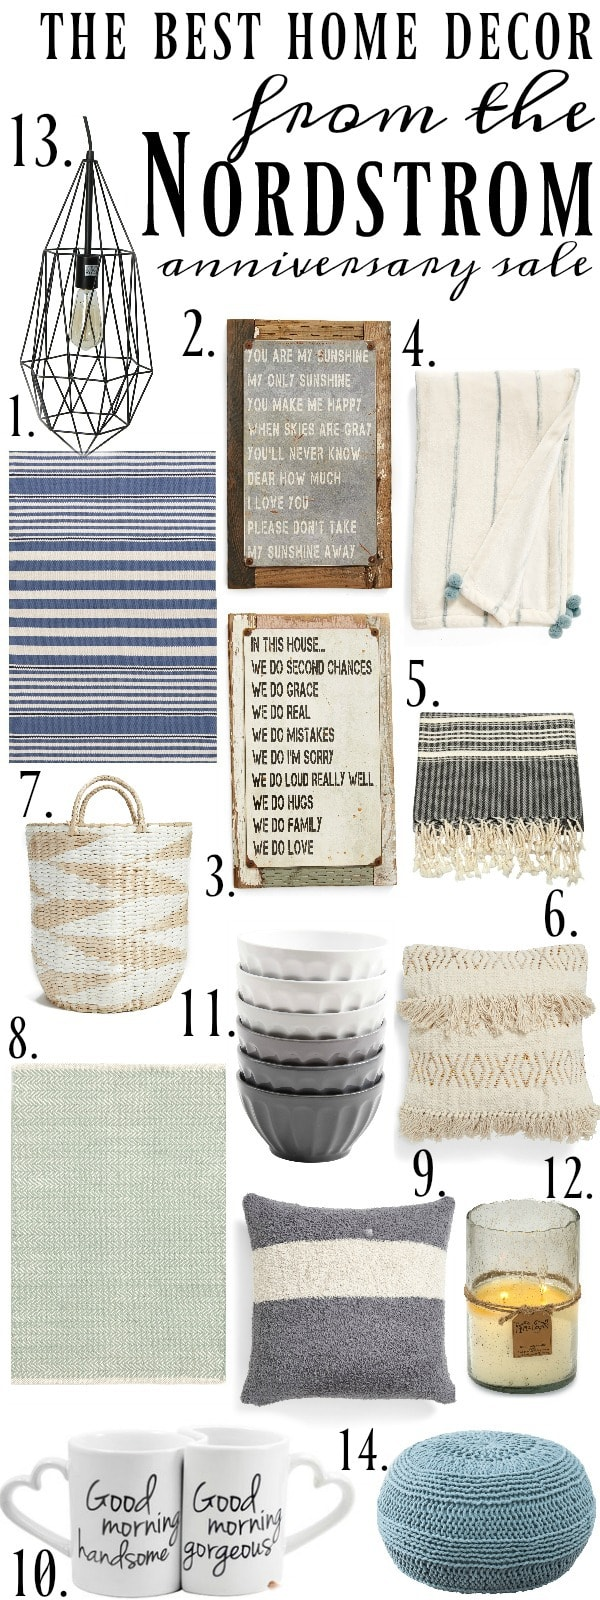 Farmhouse & Cottage Decor At Nordstrom – #NSALE